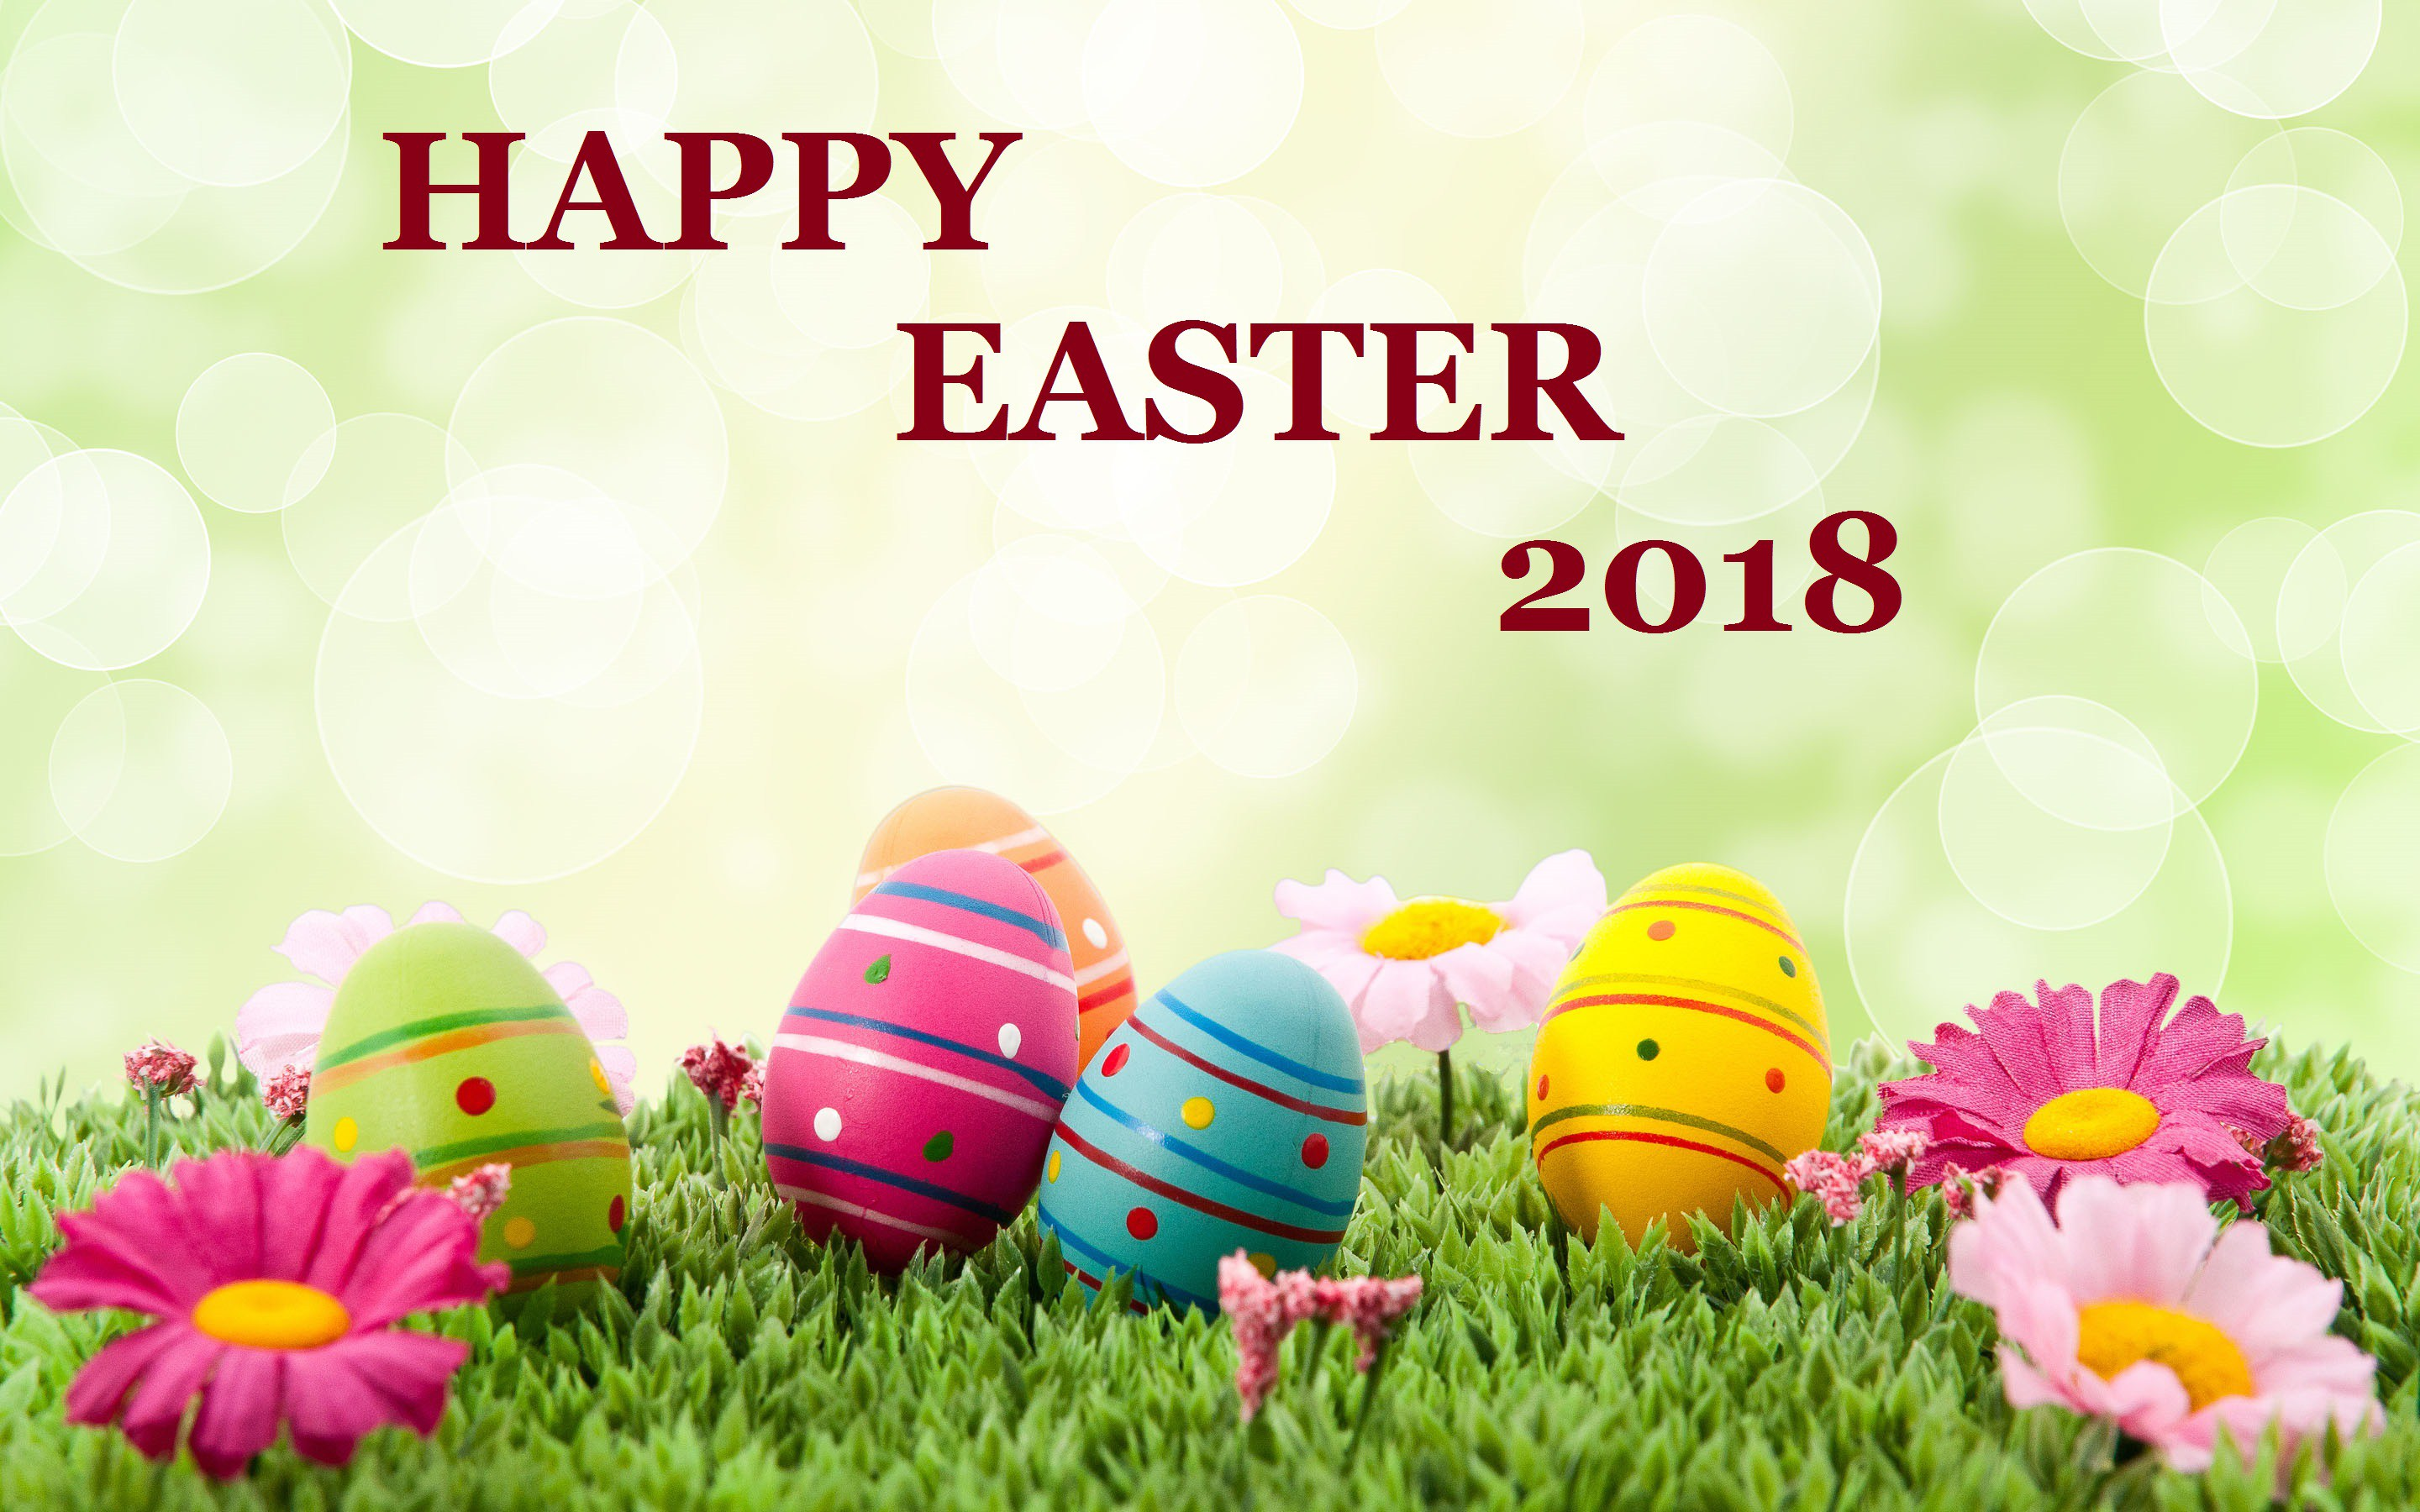 Happy Easter 2018 HD Images-Download Free Easter Wallpapers